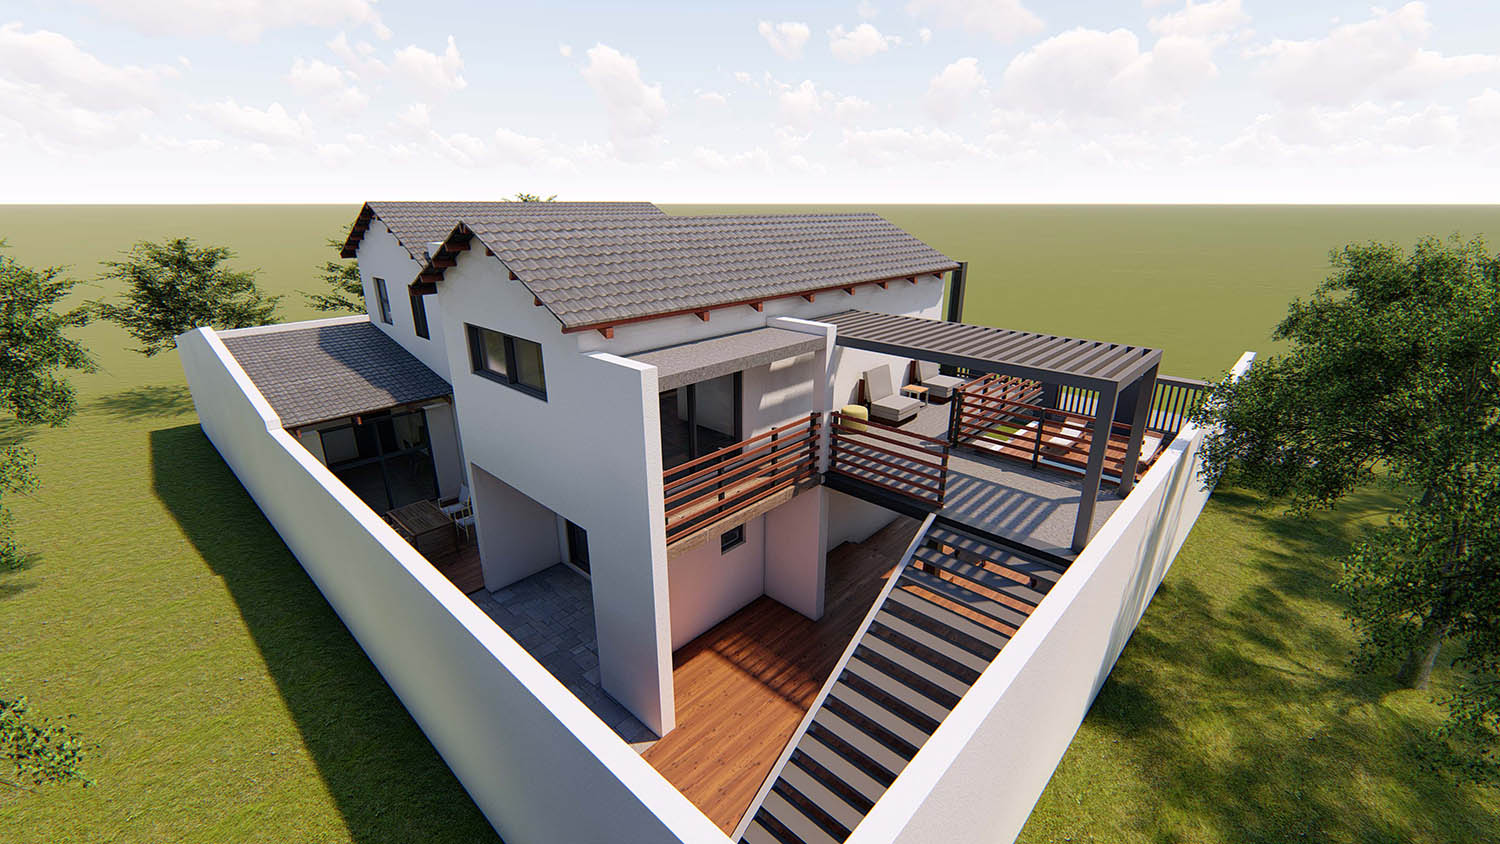 House Plans_Renovations and Alterations Montana 3